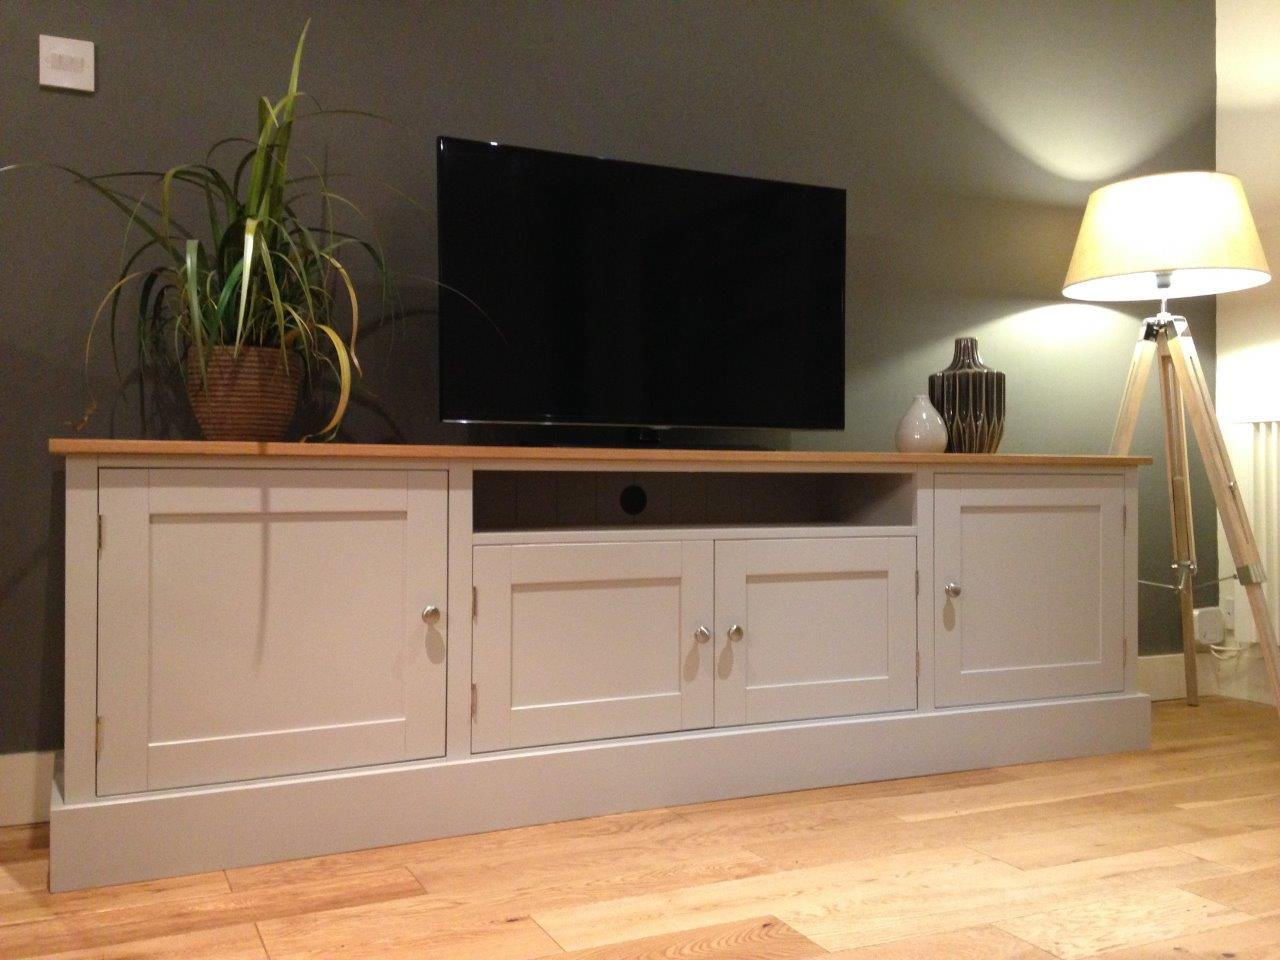 New Solid Pine& Oak 7ft TV Unit Stand Cabinet Painted Shabby Chic Sideboard eBay